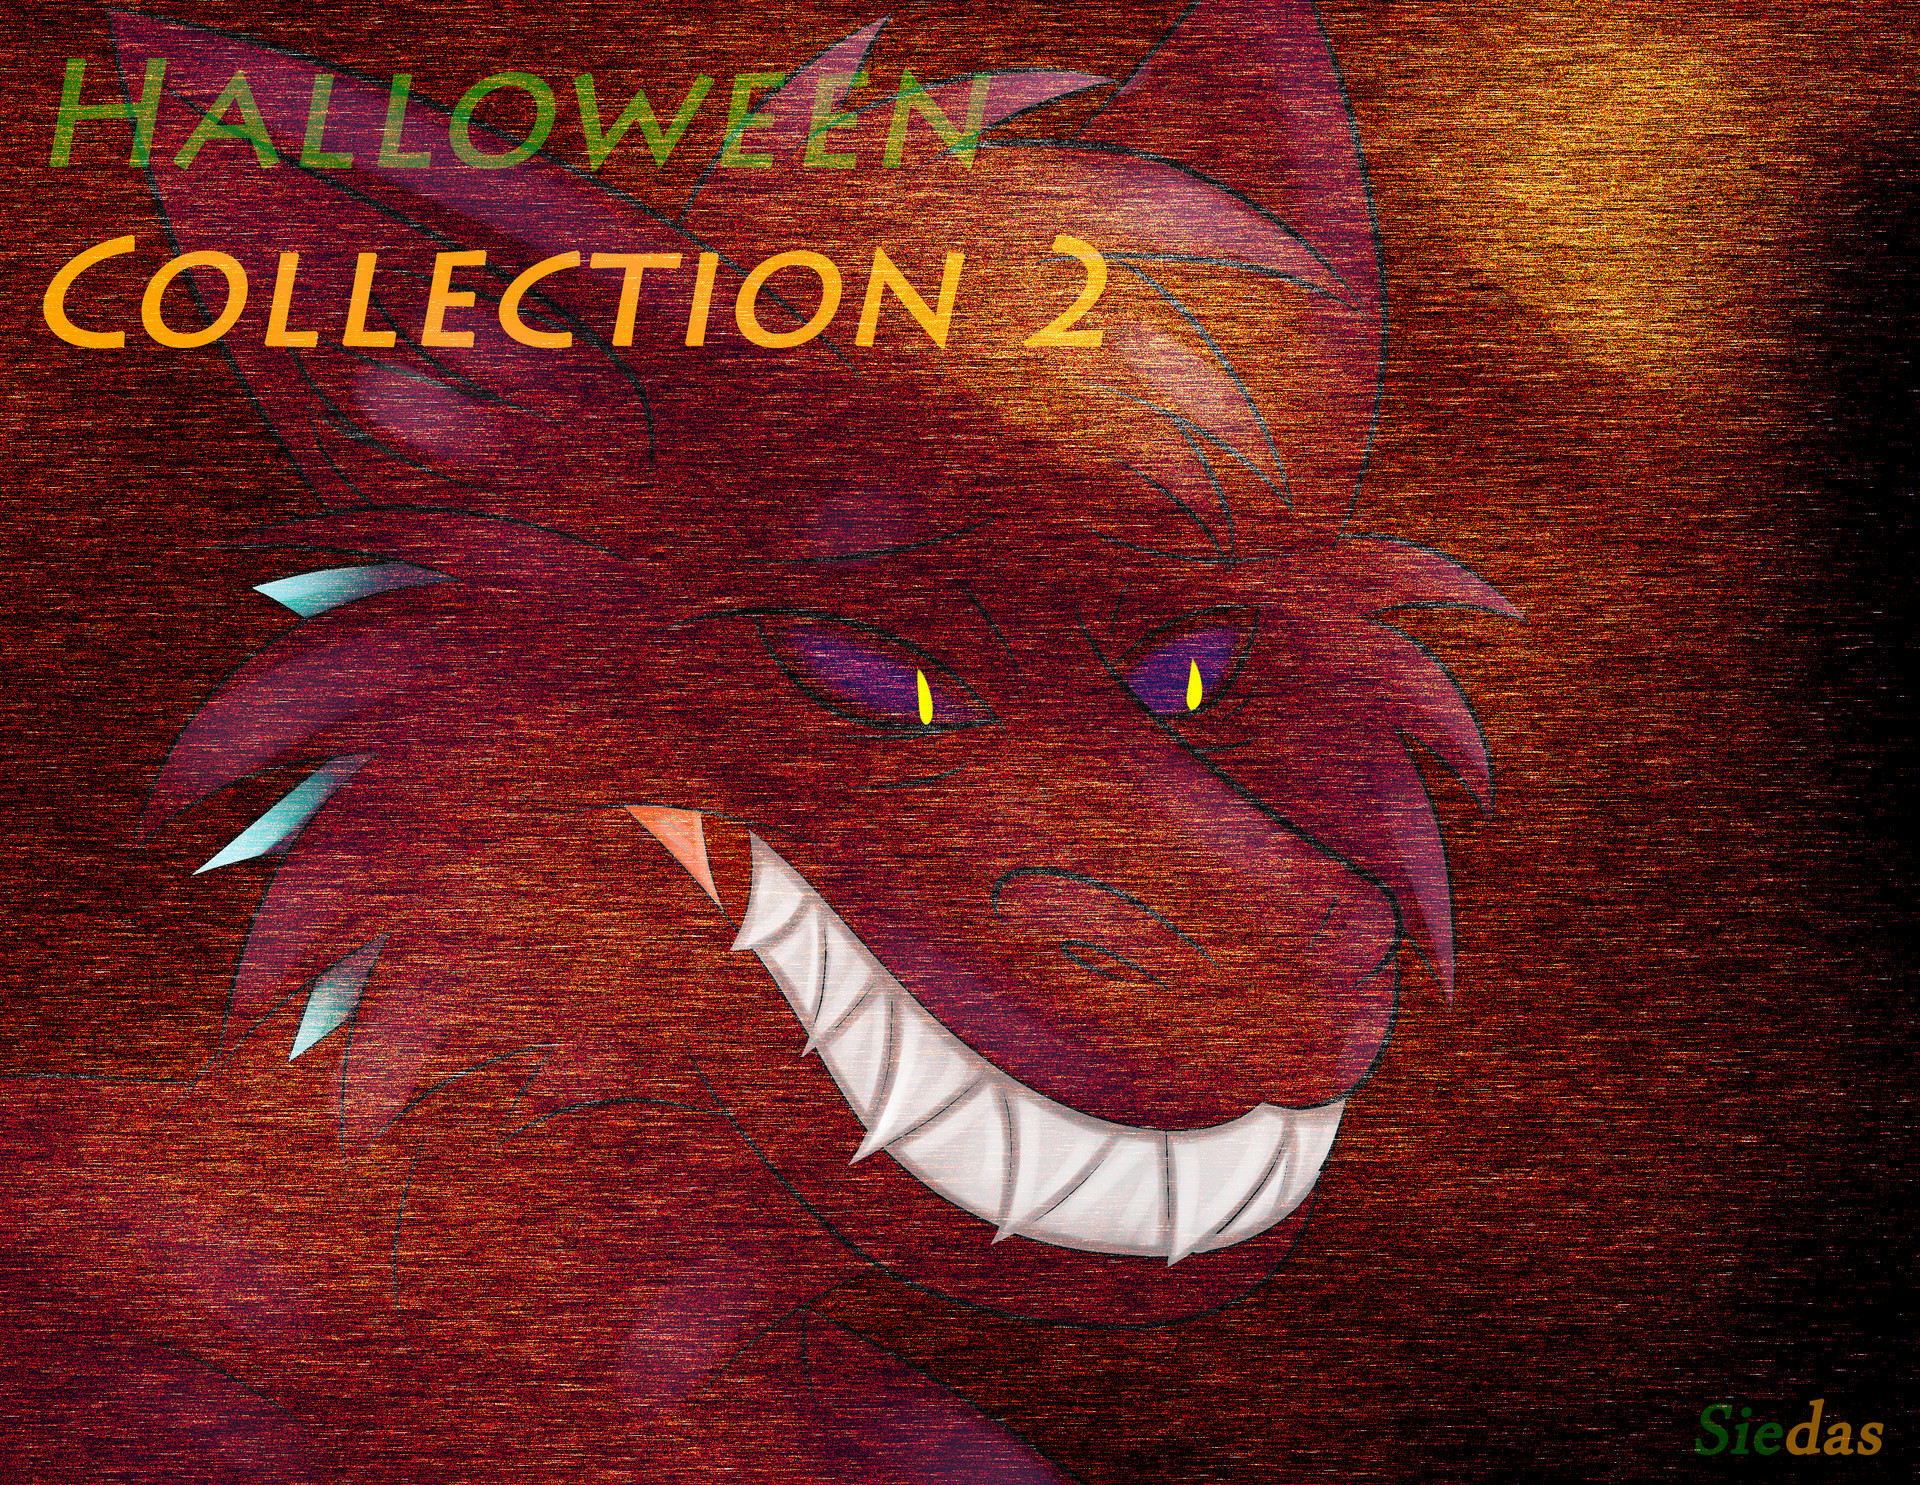 afteel nifty - halloween collection 2 cover art - wonkers